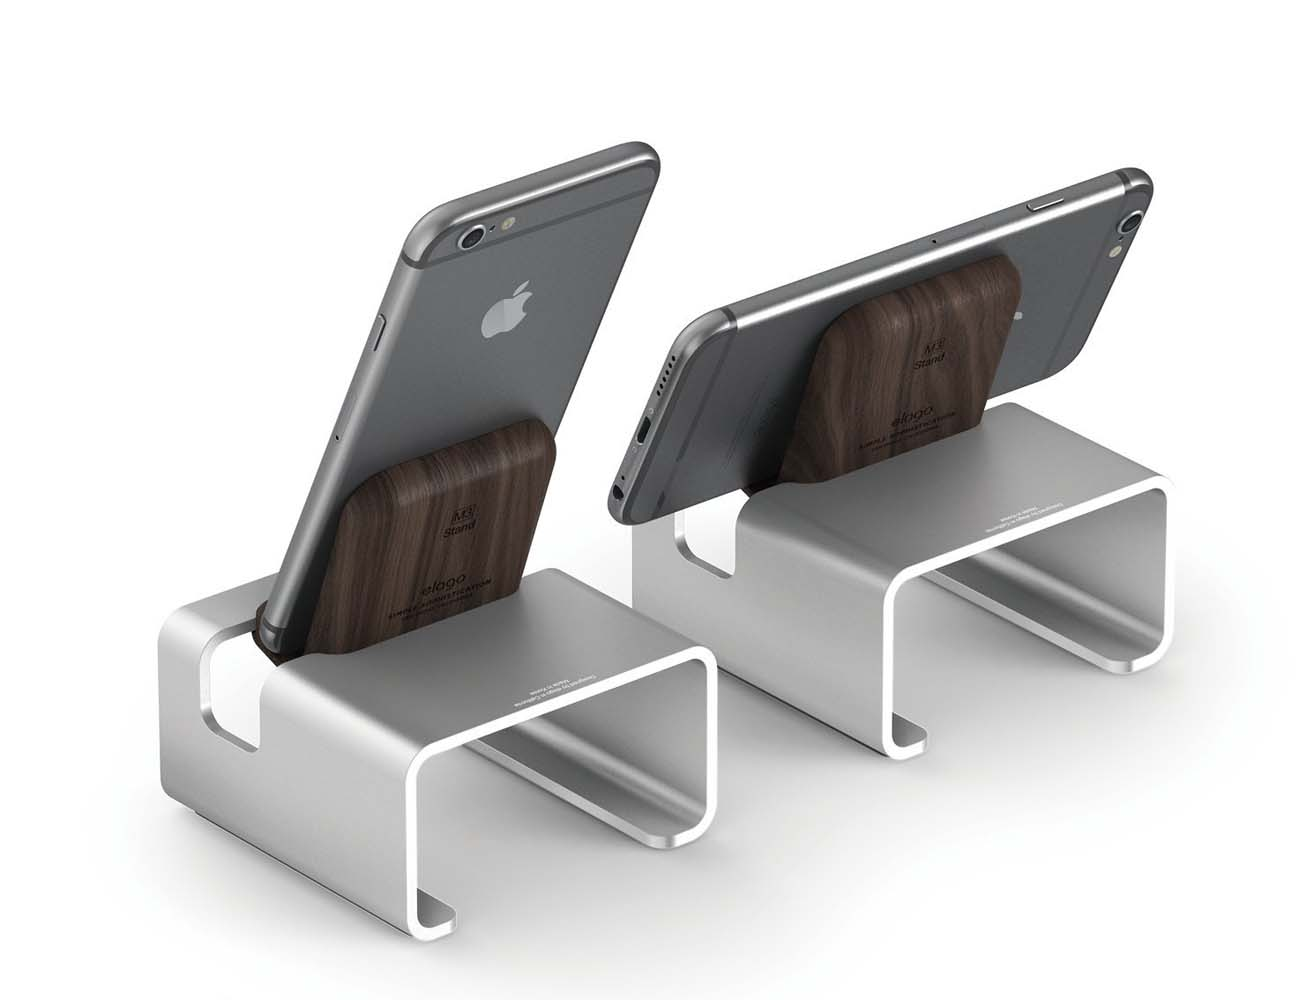 M3 Stand for Mobile Phones